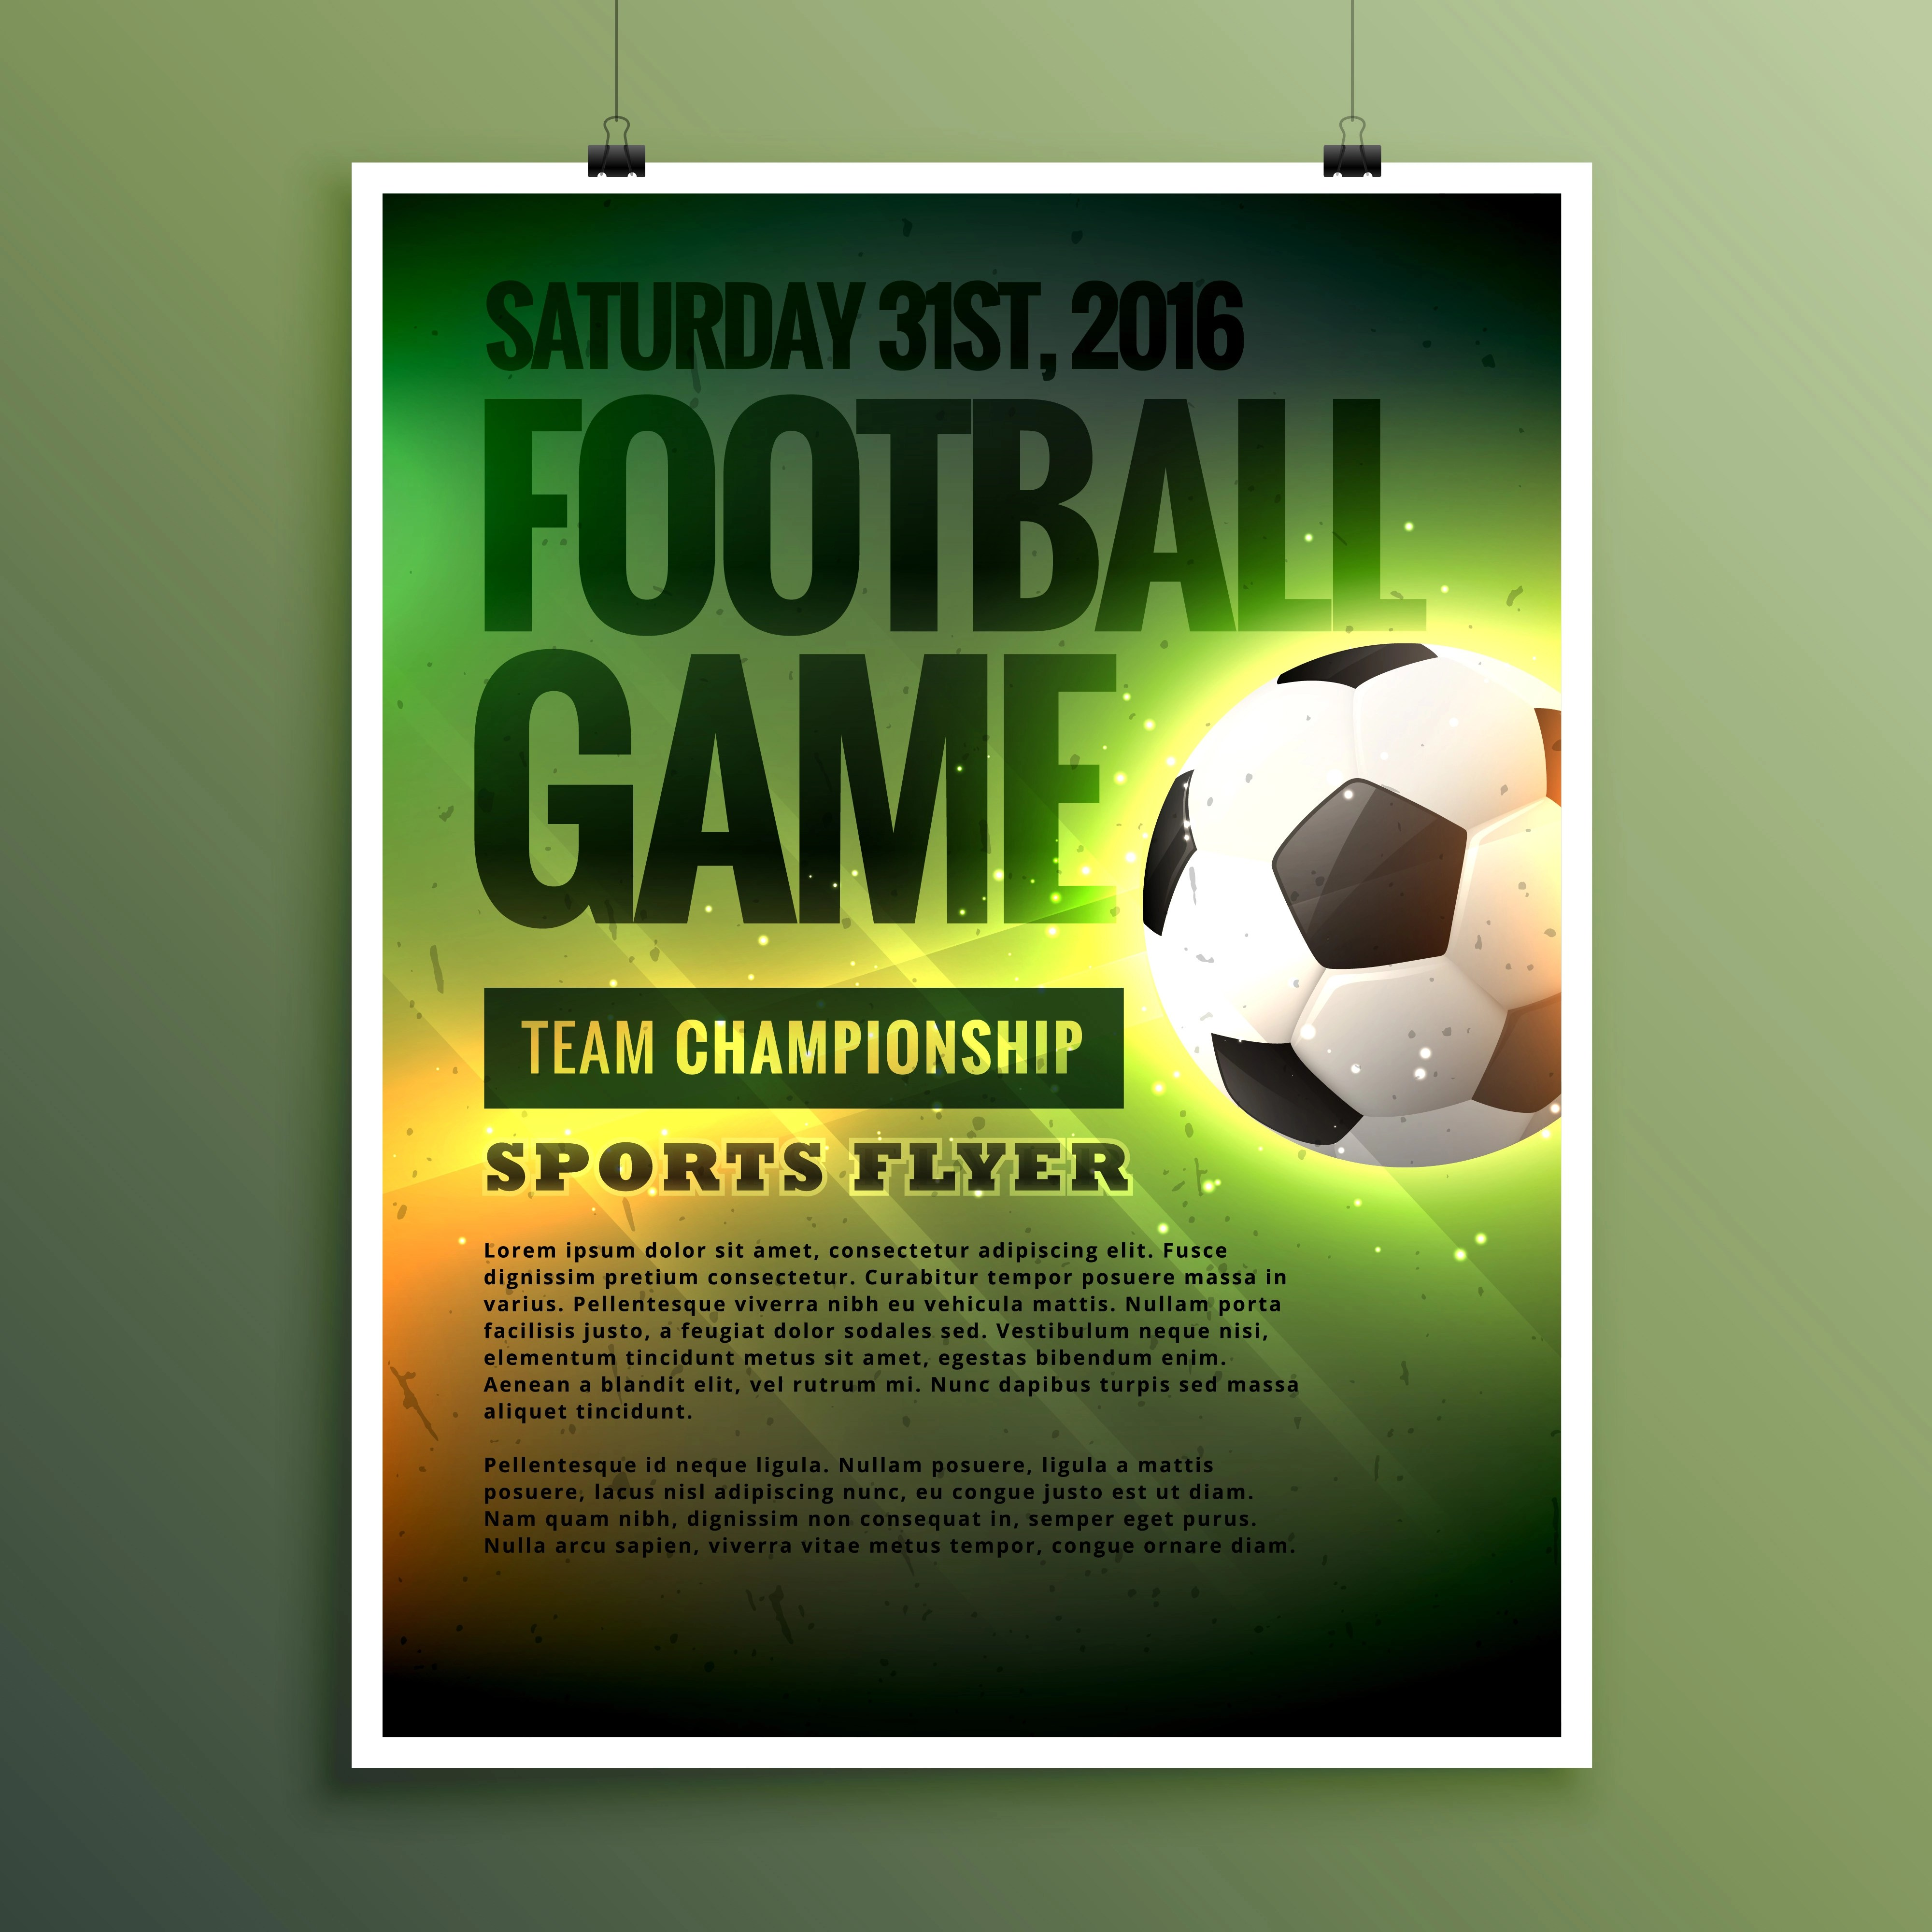 Football Game Flyer Design Card Invitation Template - Download Free Vector  Art, Stock Graphics & Images